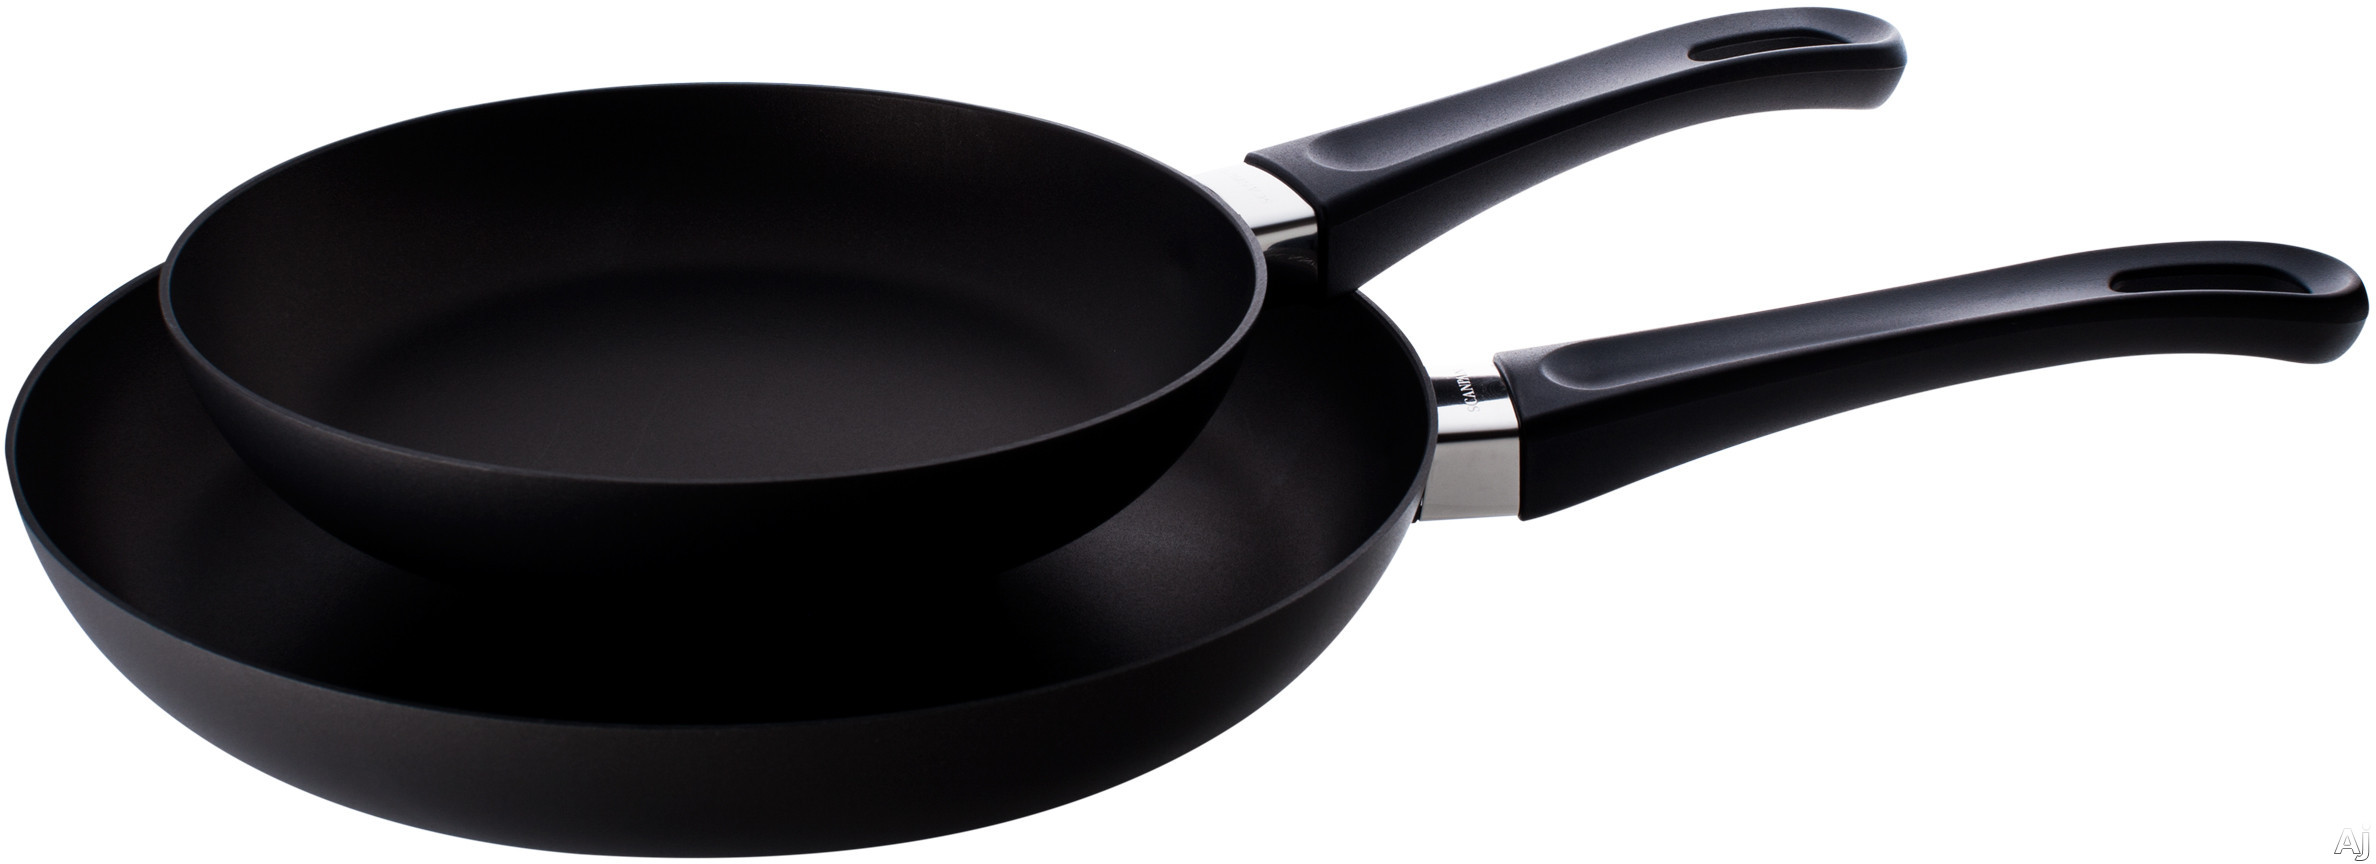 Scanpan 10202600 Classic 2-Piece Fry Pan Set with Ceramic Titanium Surface, Handcrafted in Denmark, Non-Stick, Ovenproof, Dishwasher Safe, 100% Recycled Materials and PFOA-Free